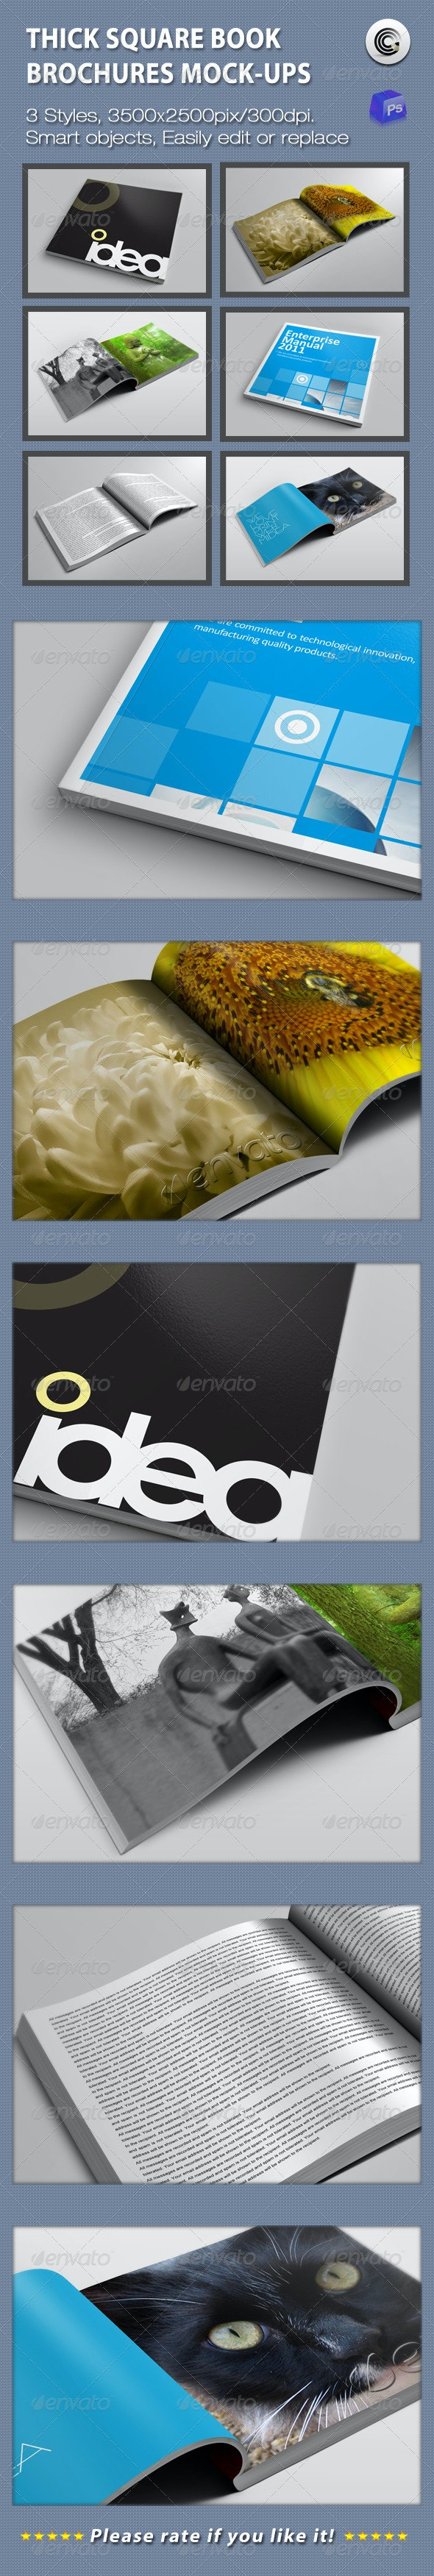 Thick Square Book  Brochures Mock-ups - Books Print